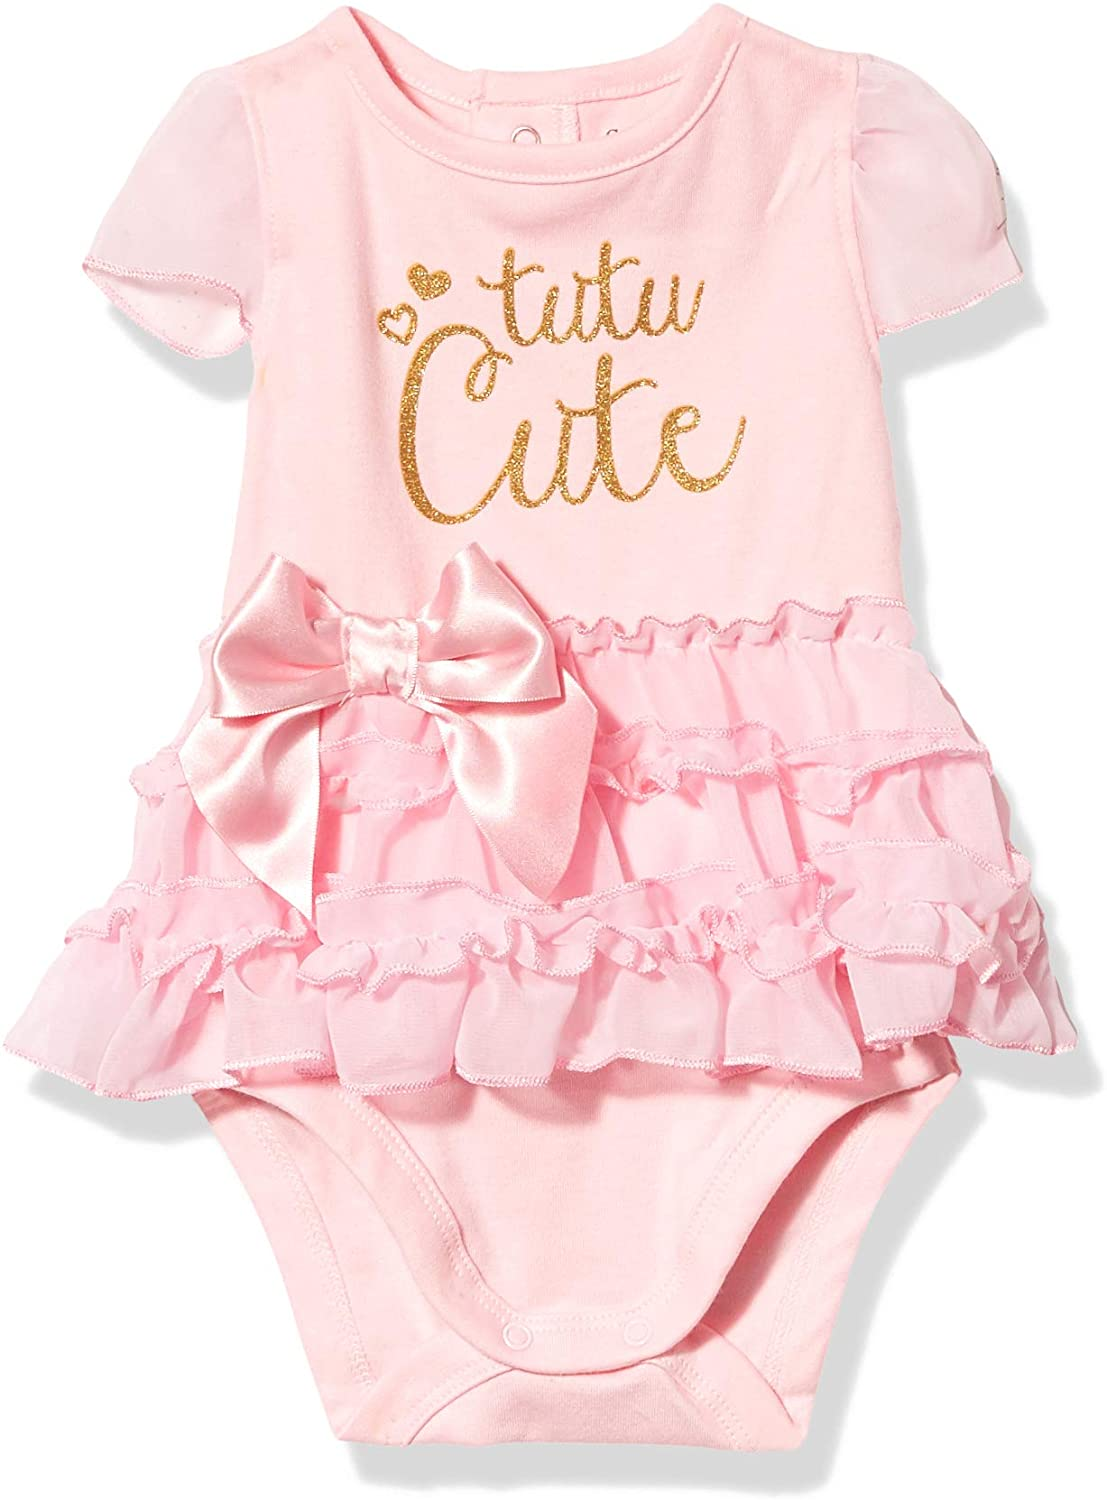 Gerber Baby Girls Bodysuit with Tutu Skirt